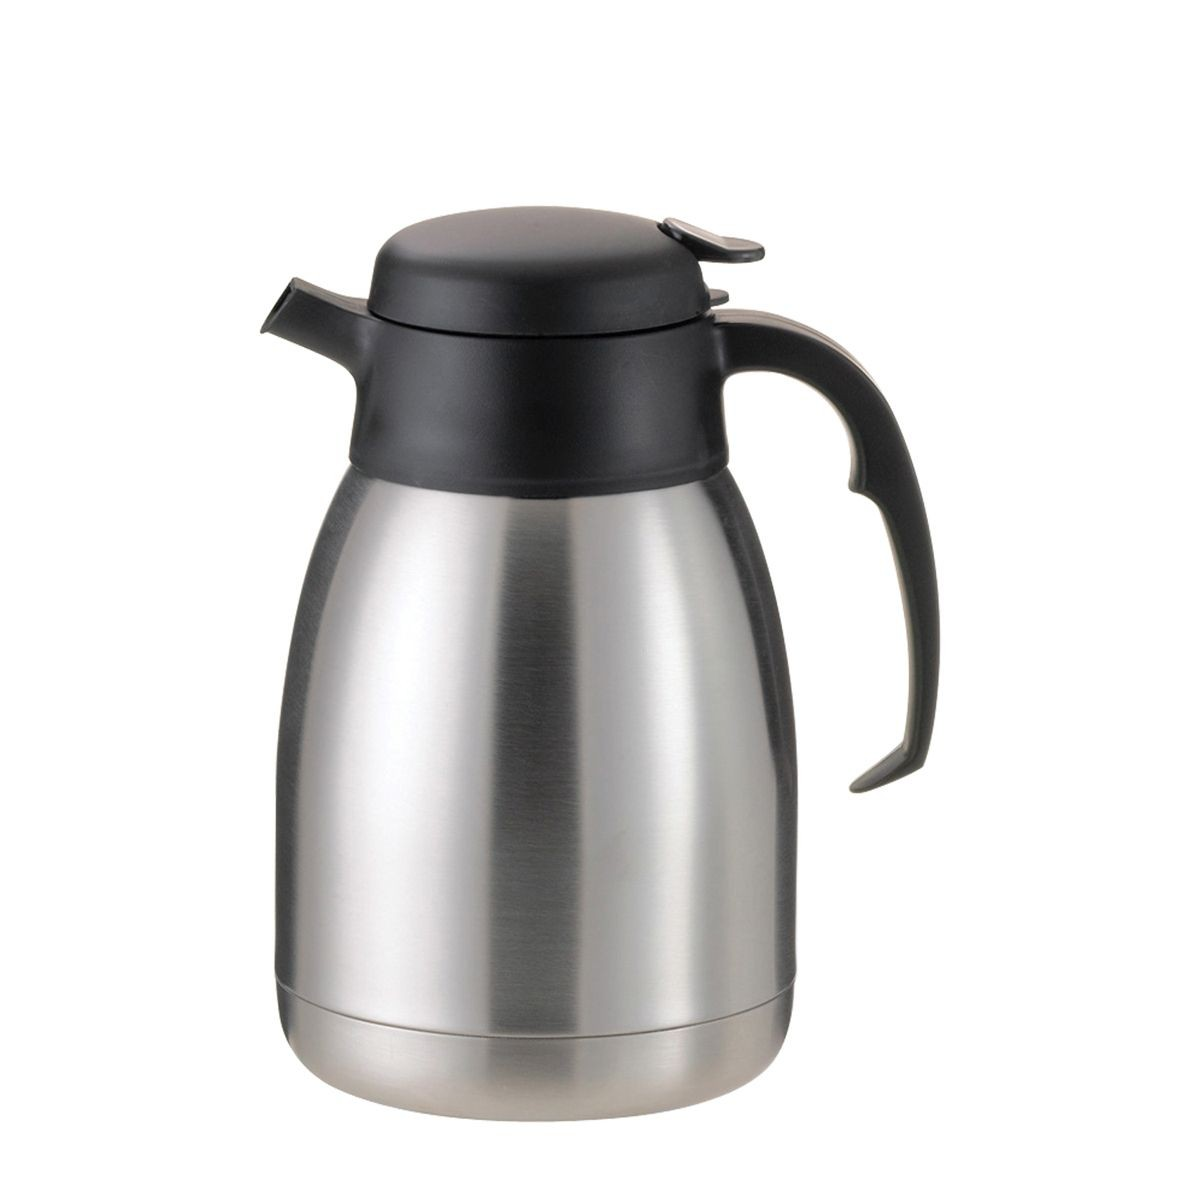 Service Ideas FVP20 Steelvac Insulated Stainless Steel Server 2 Liter